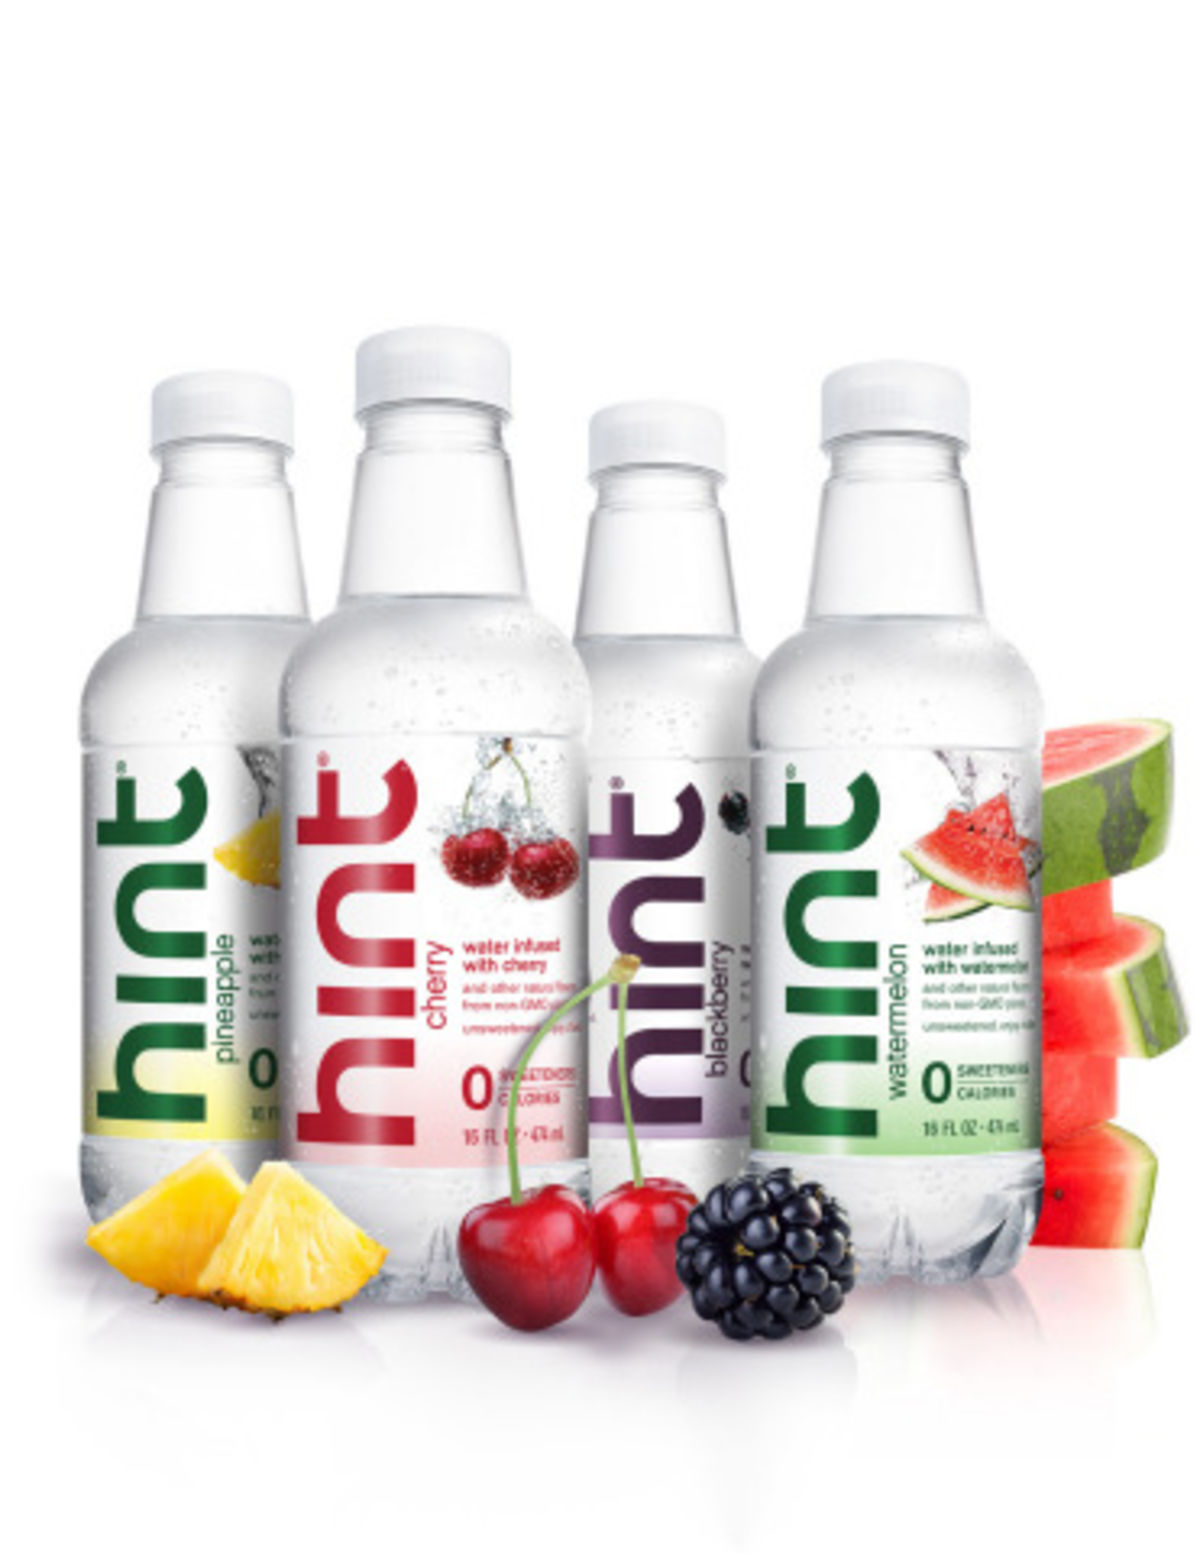 Multiyear Agreement Names hint® the Official Flavored Water across 12 AEG Music Venues in San Francisco, Los Angeles, New York and Boston